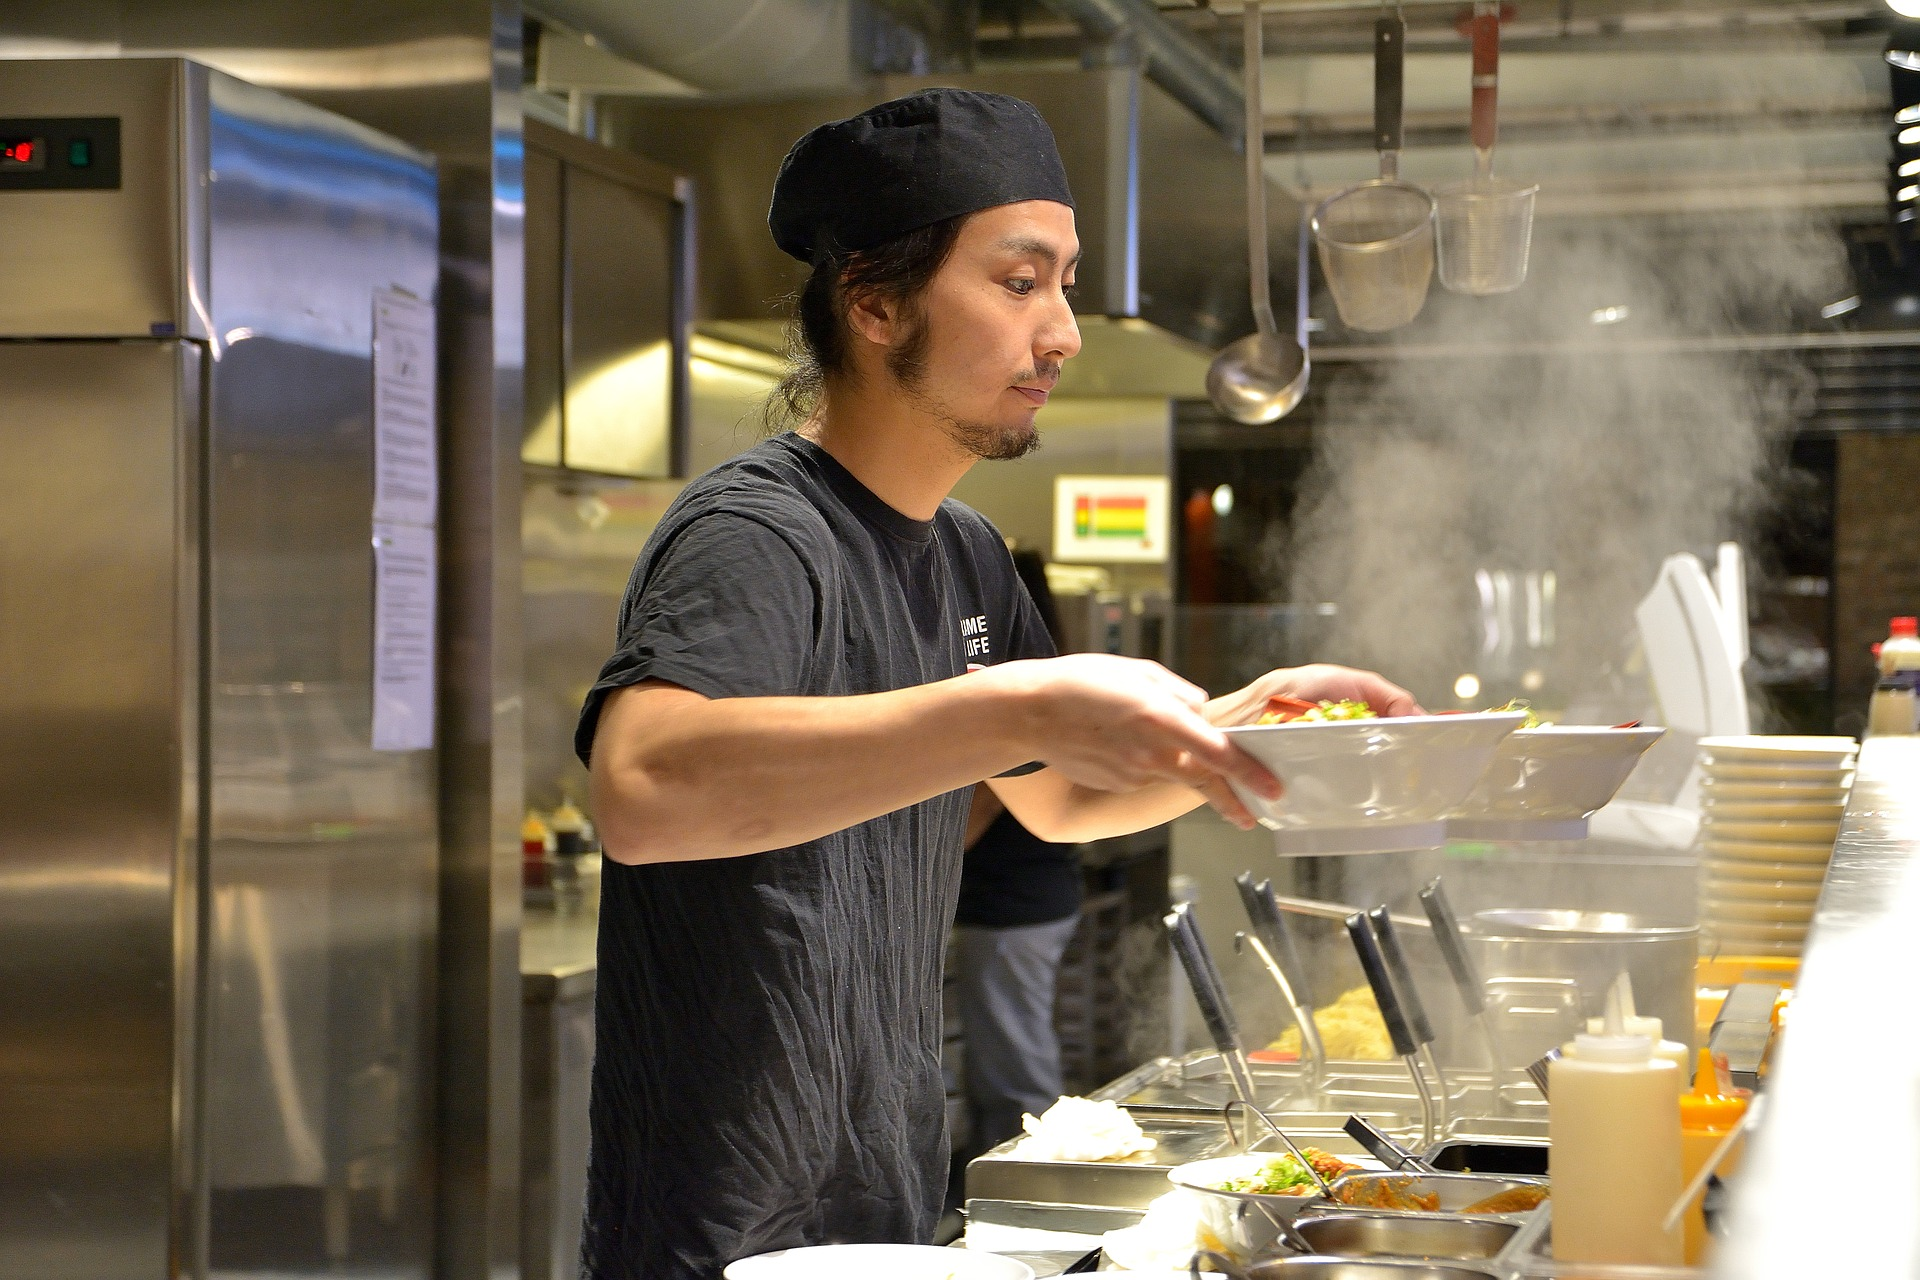 workplace safety in restaurants